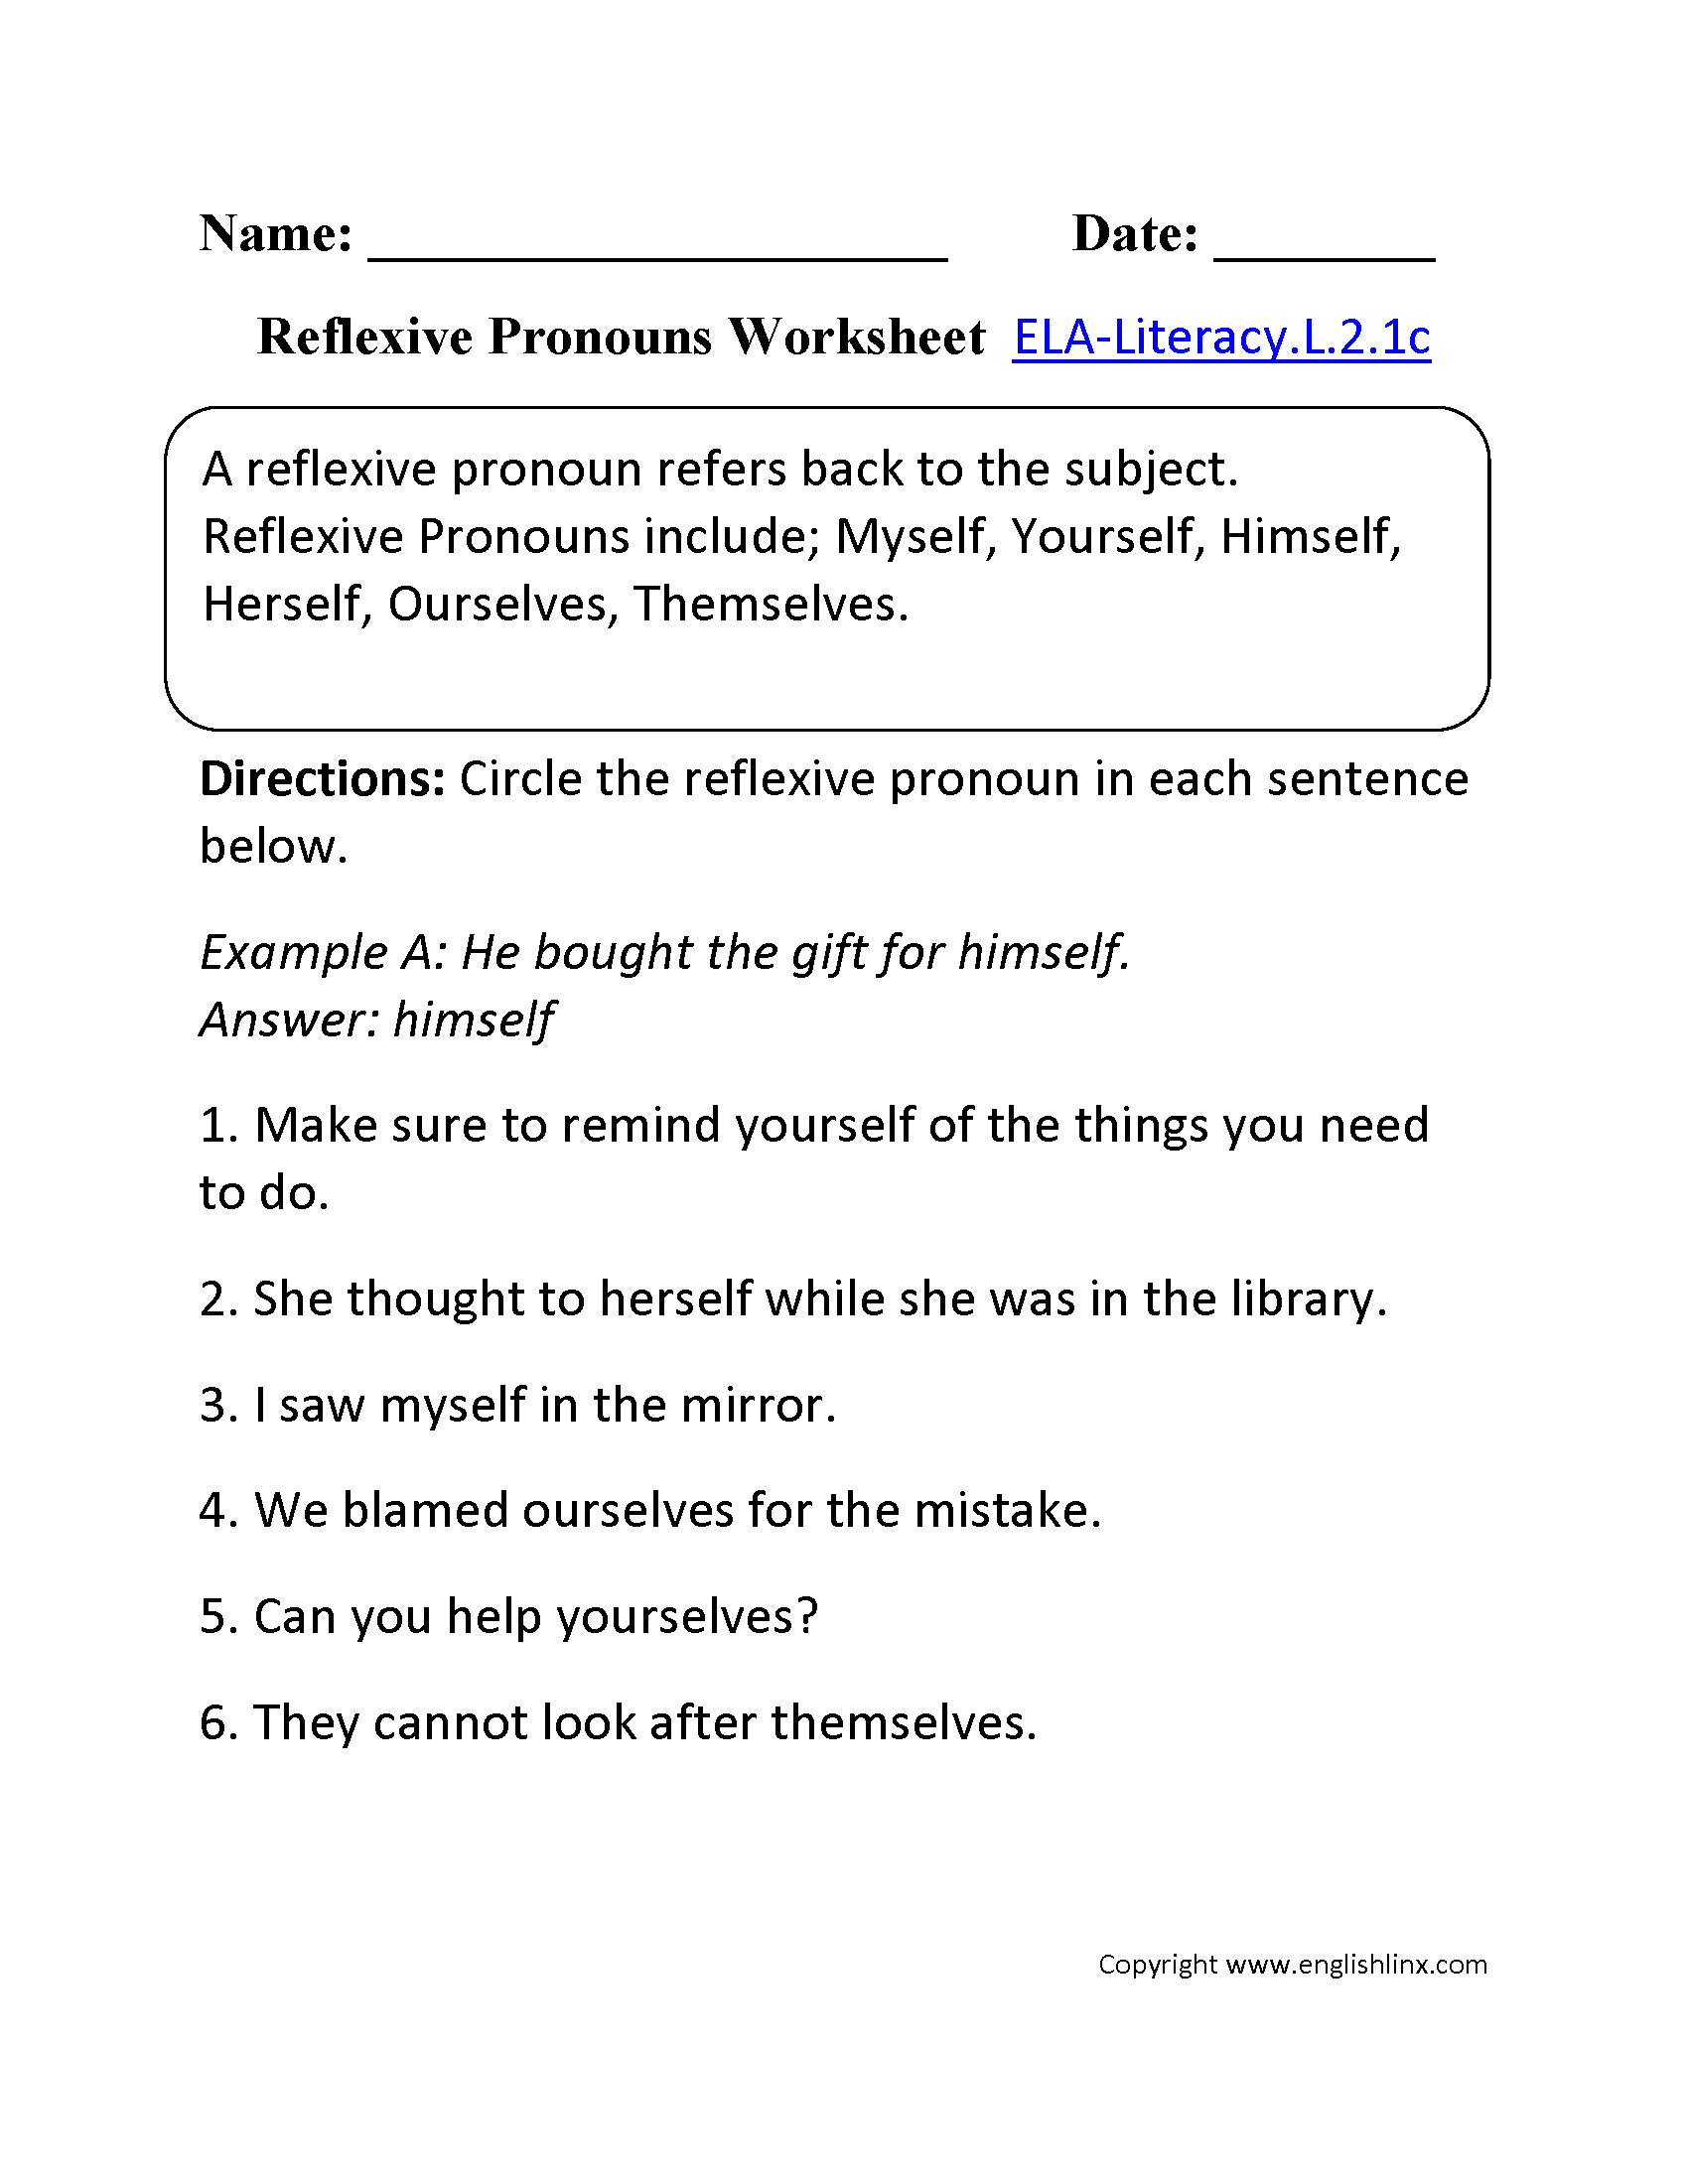 Worksheets 2nd Grade Ela Worksheets 2nd grade common core language worksheets reflexive pronouns worksheet 2 ela literacy l 1c worksheet